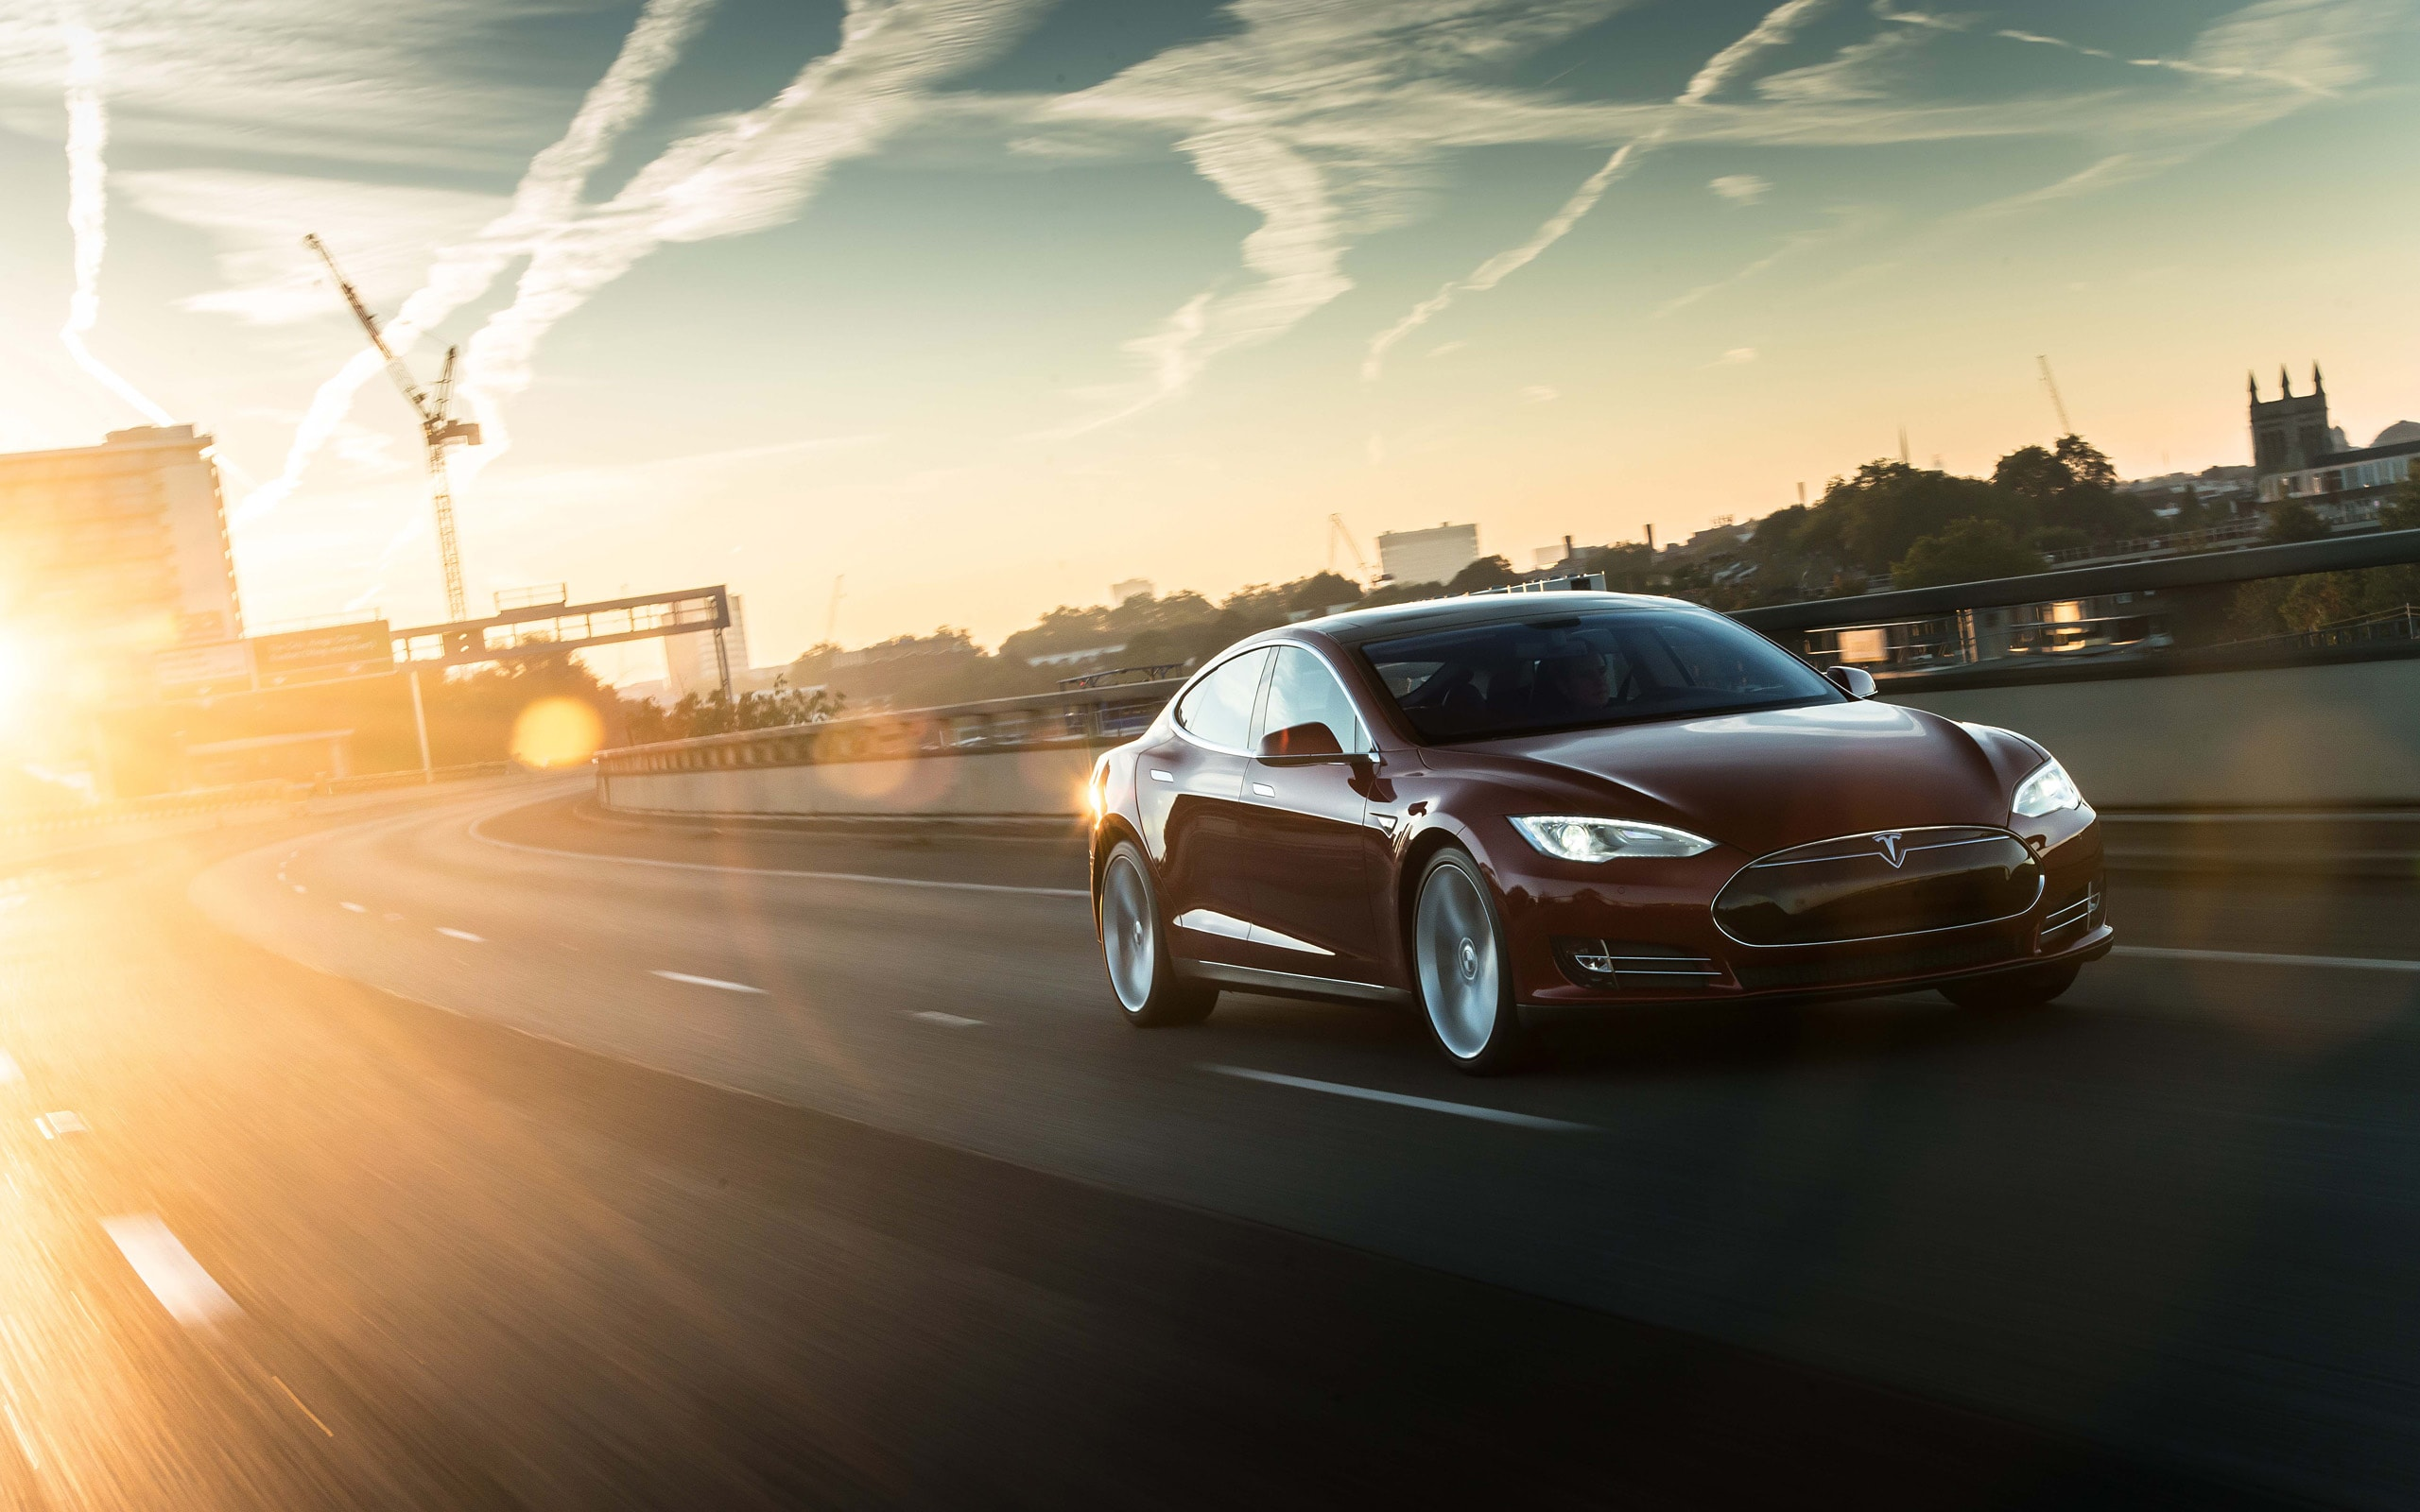 Tesla Model S Desktop wallpaper